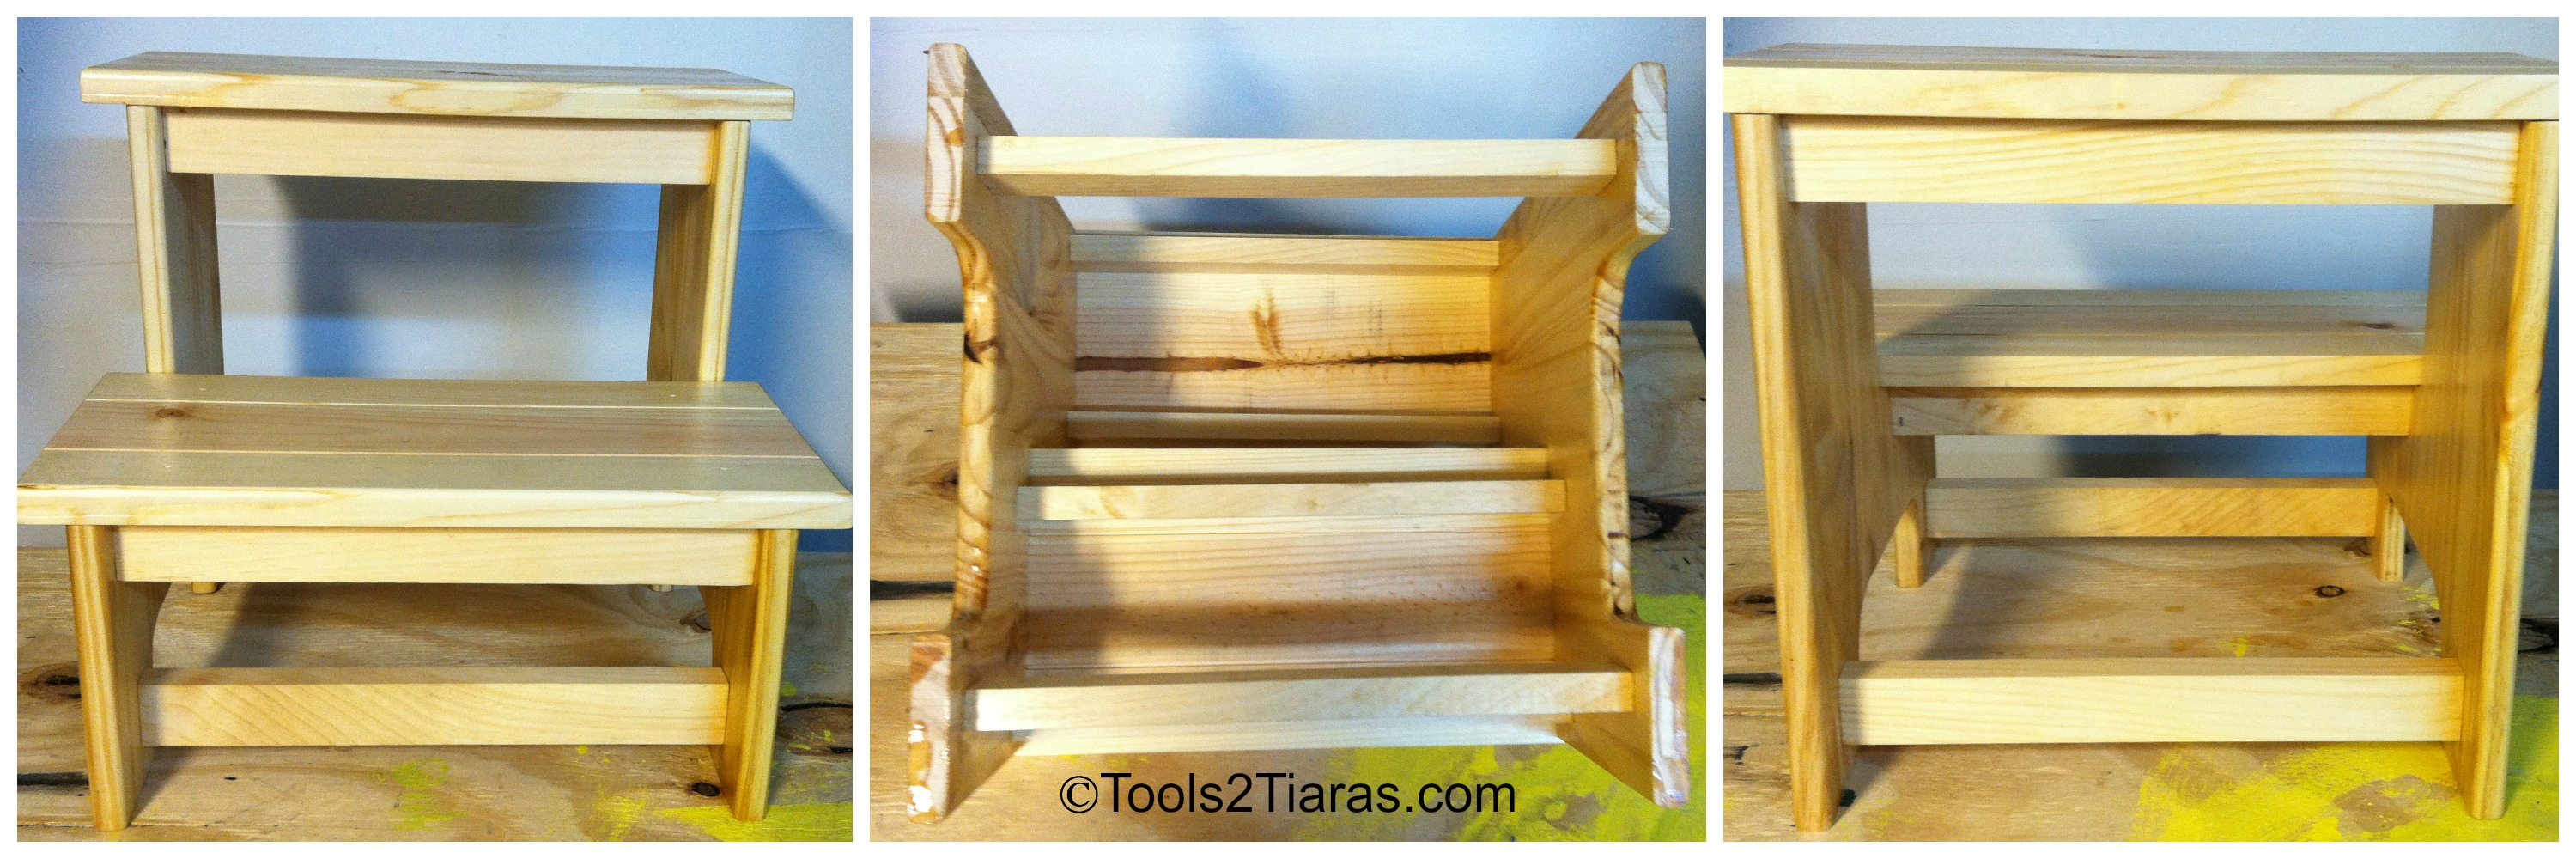 How To Build A Step Stool For Your Toddler Easy Diy